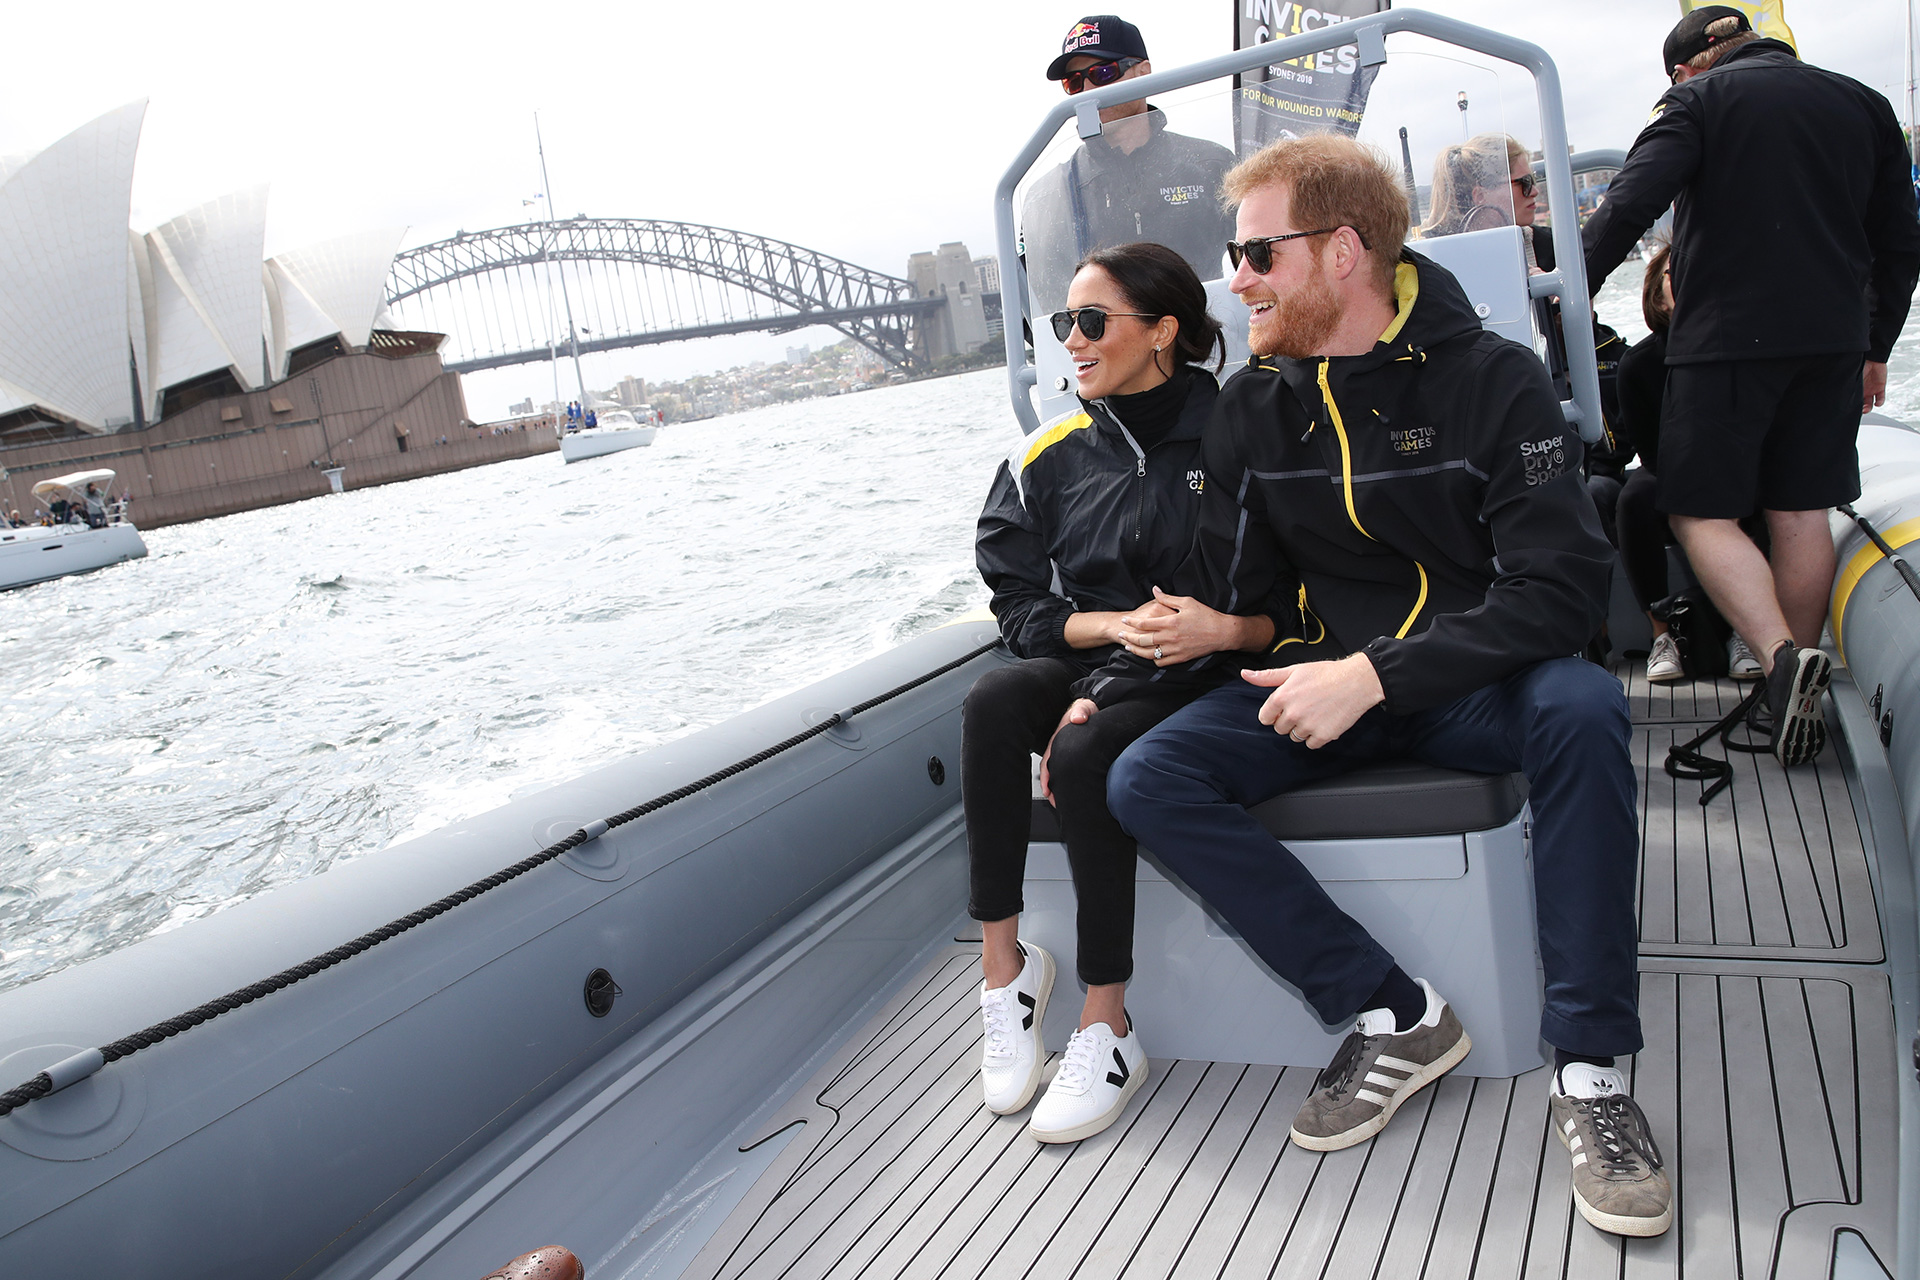 SYDNEY, AUSTRALIA - OCTOBER 21: Prince Harry, Duke of Sussex and Meghan, Duchess of Sussex on Sydney Harbour looking out at Sydney Opera House and Sydney Harbour Bridge during day two of the Invictus Games Sydney 2018 at Sydney Olympic Park on October 21, 2018 in Sydney, Australia.